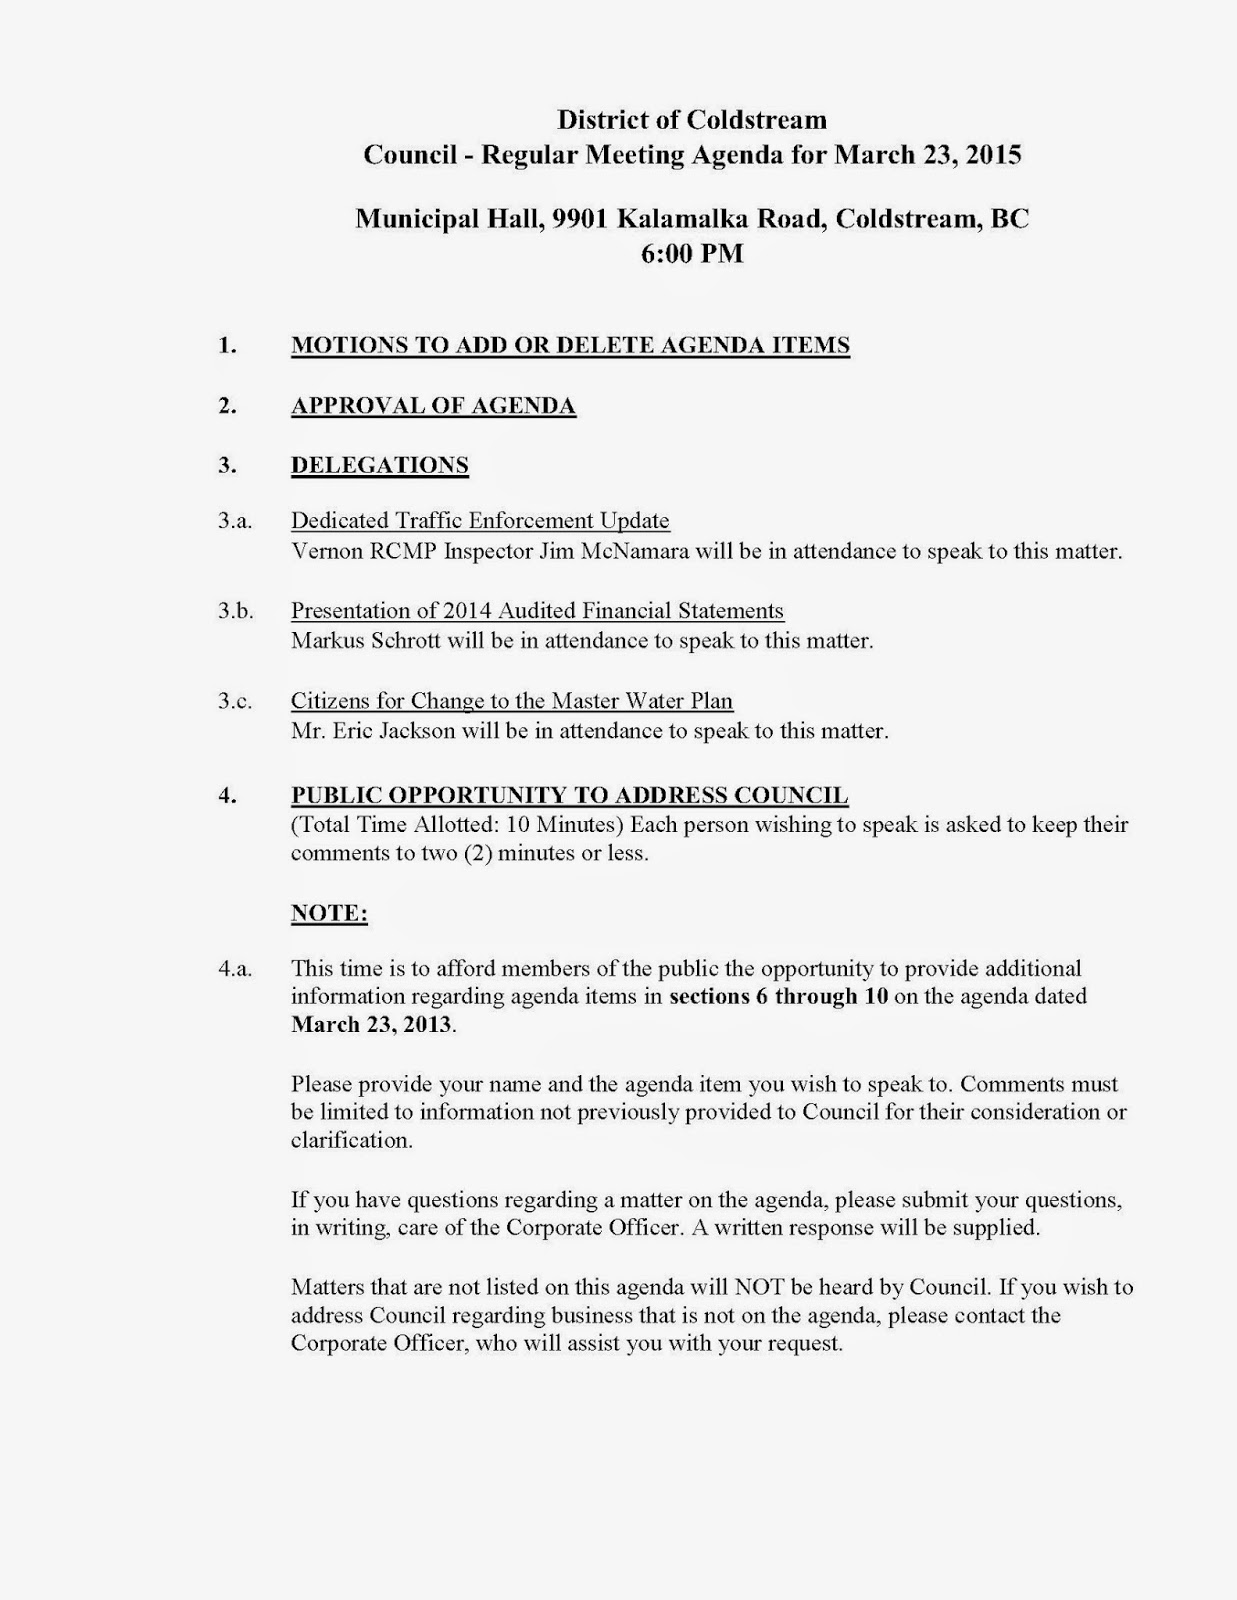 Coldstream Council Meeting - March 23, 2015